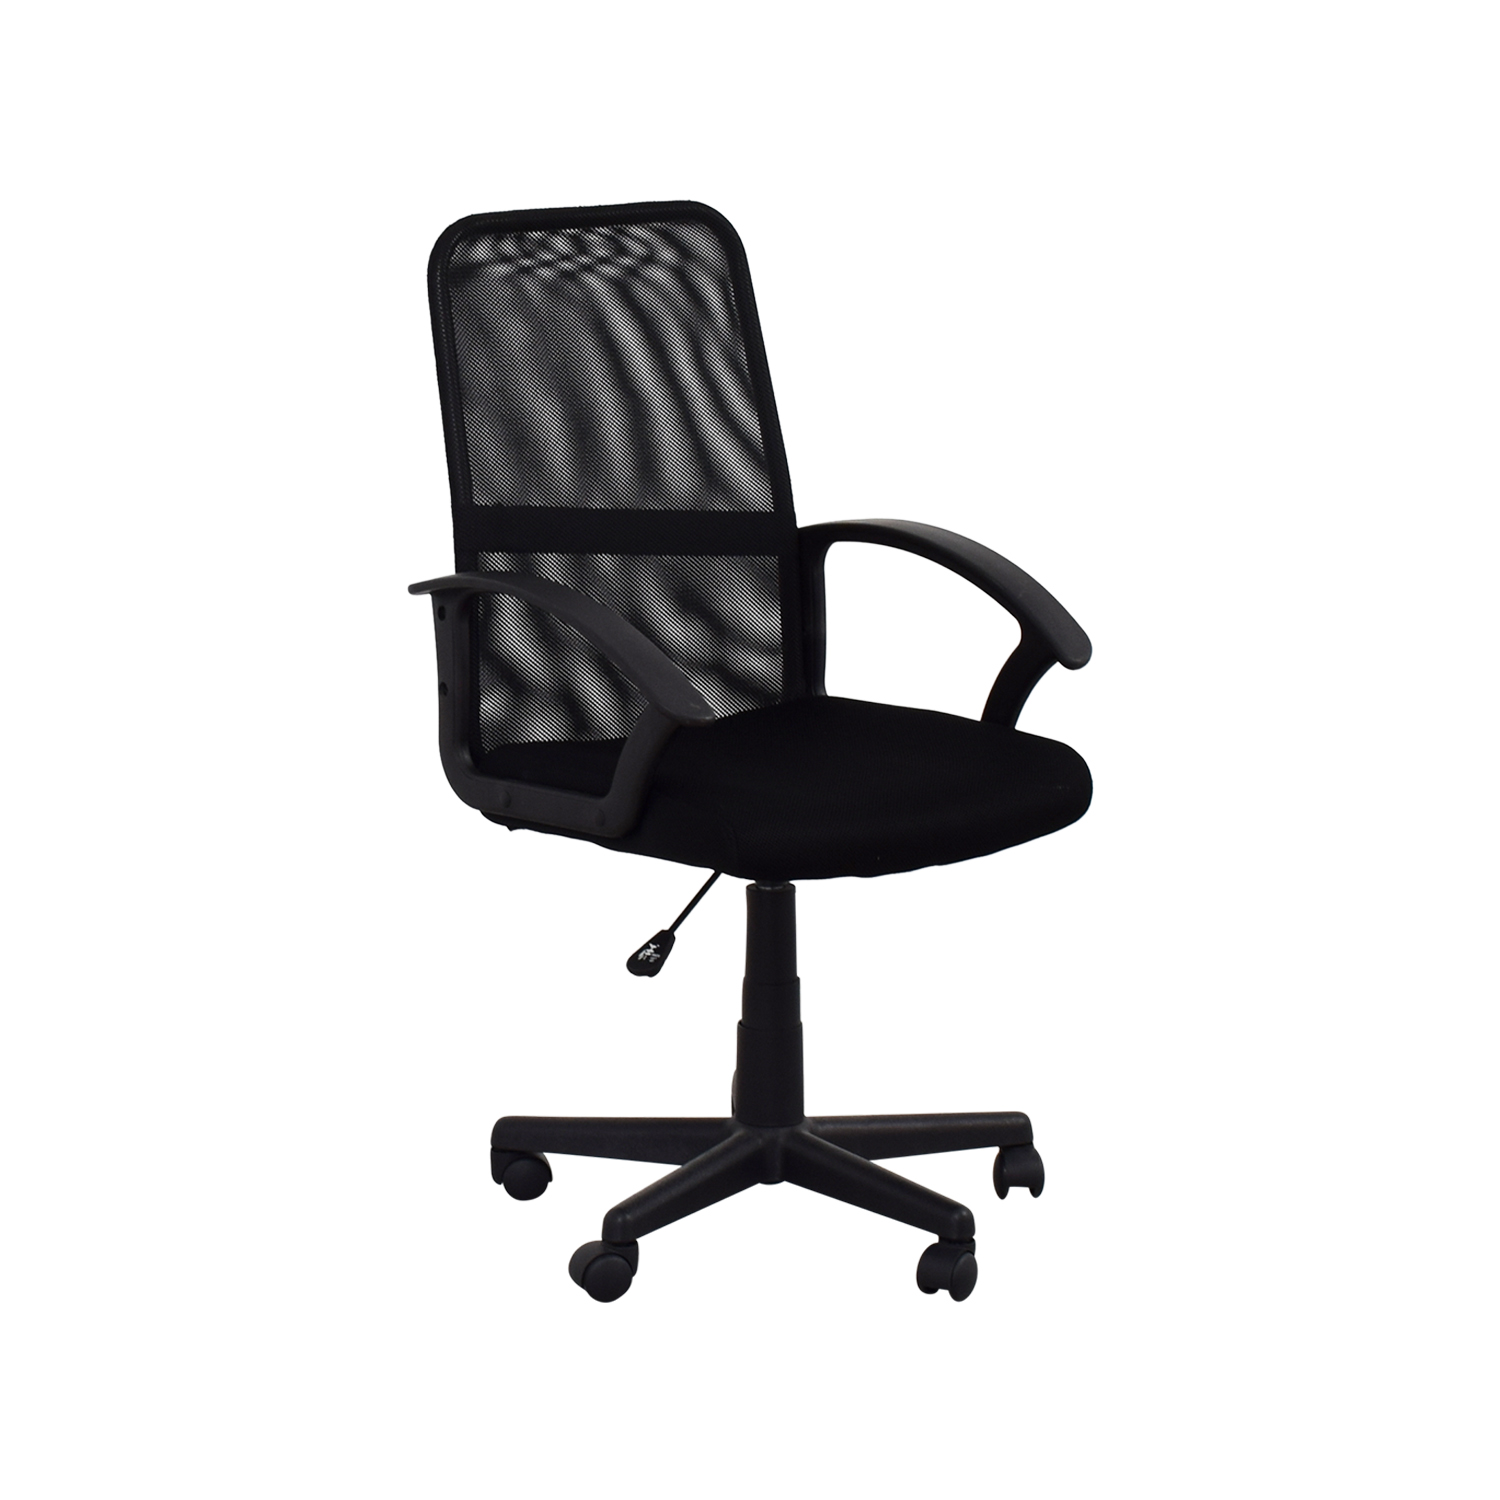 51 off black mesh computer chair chairs